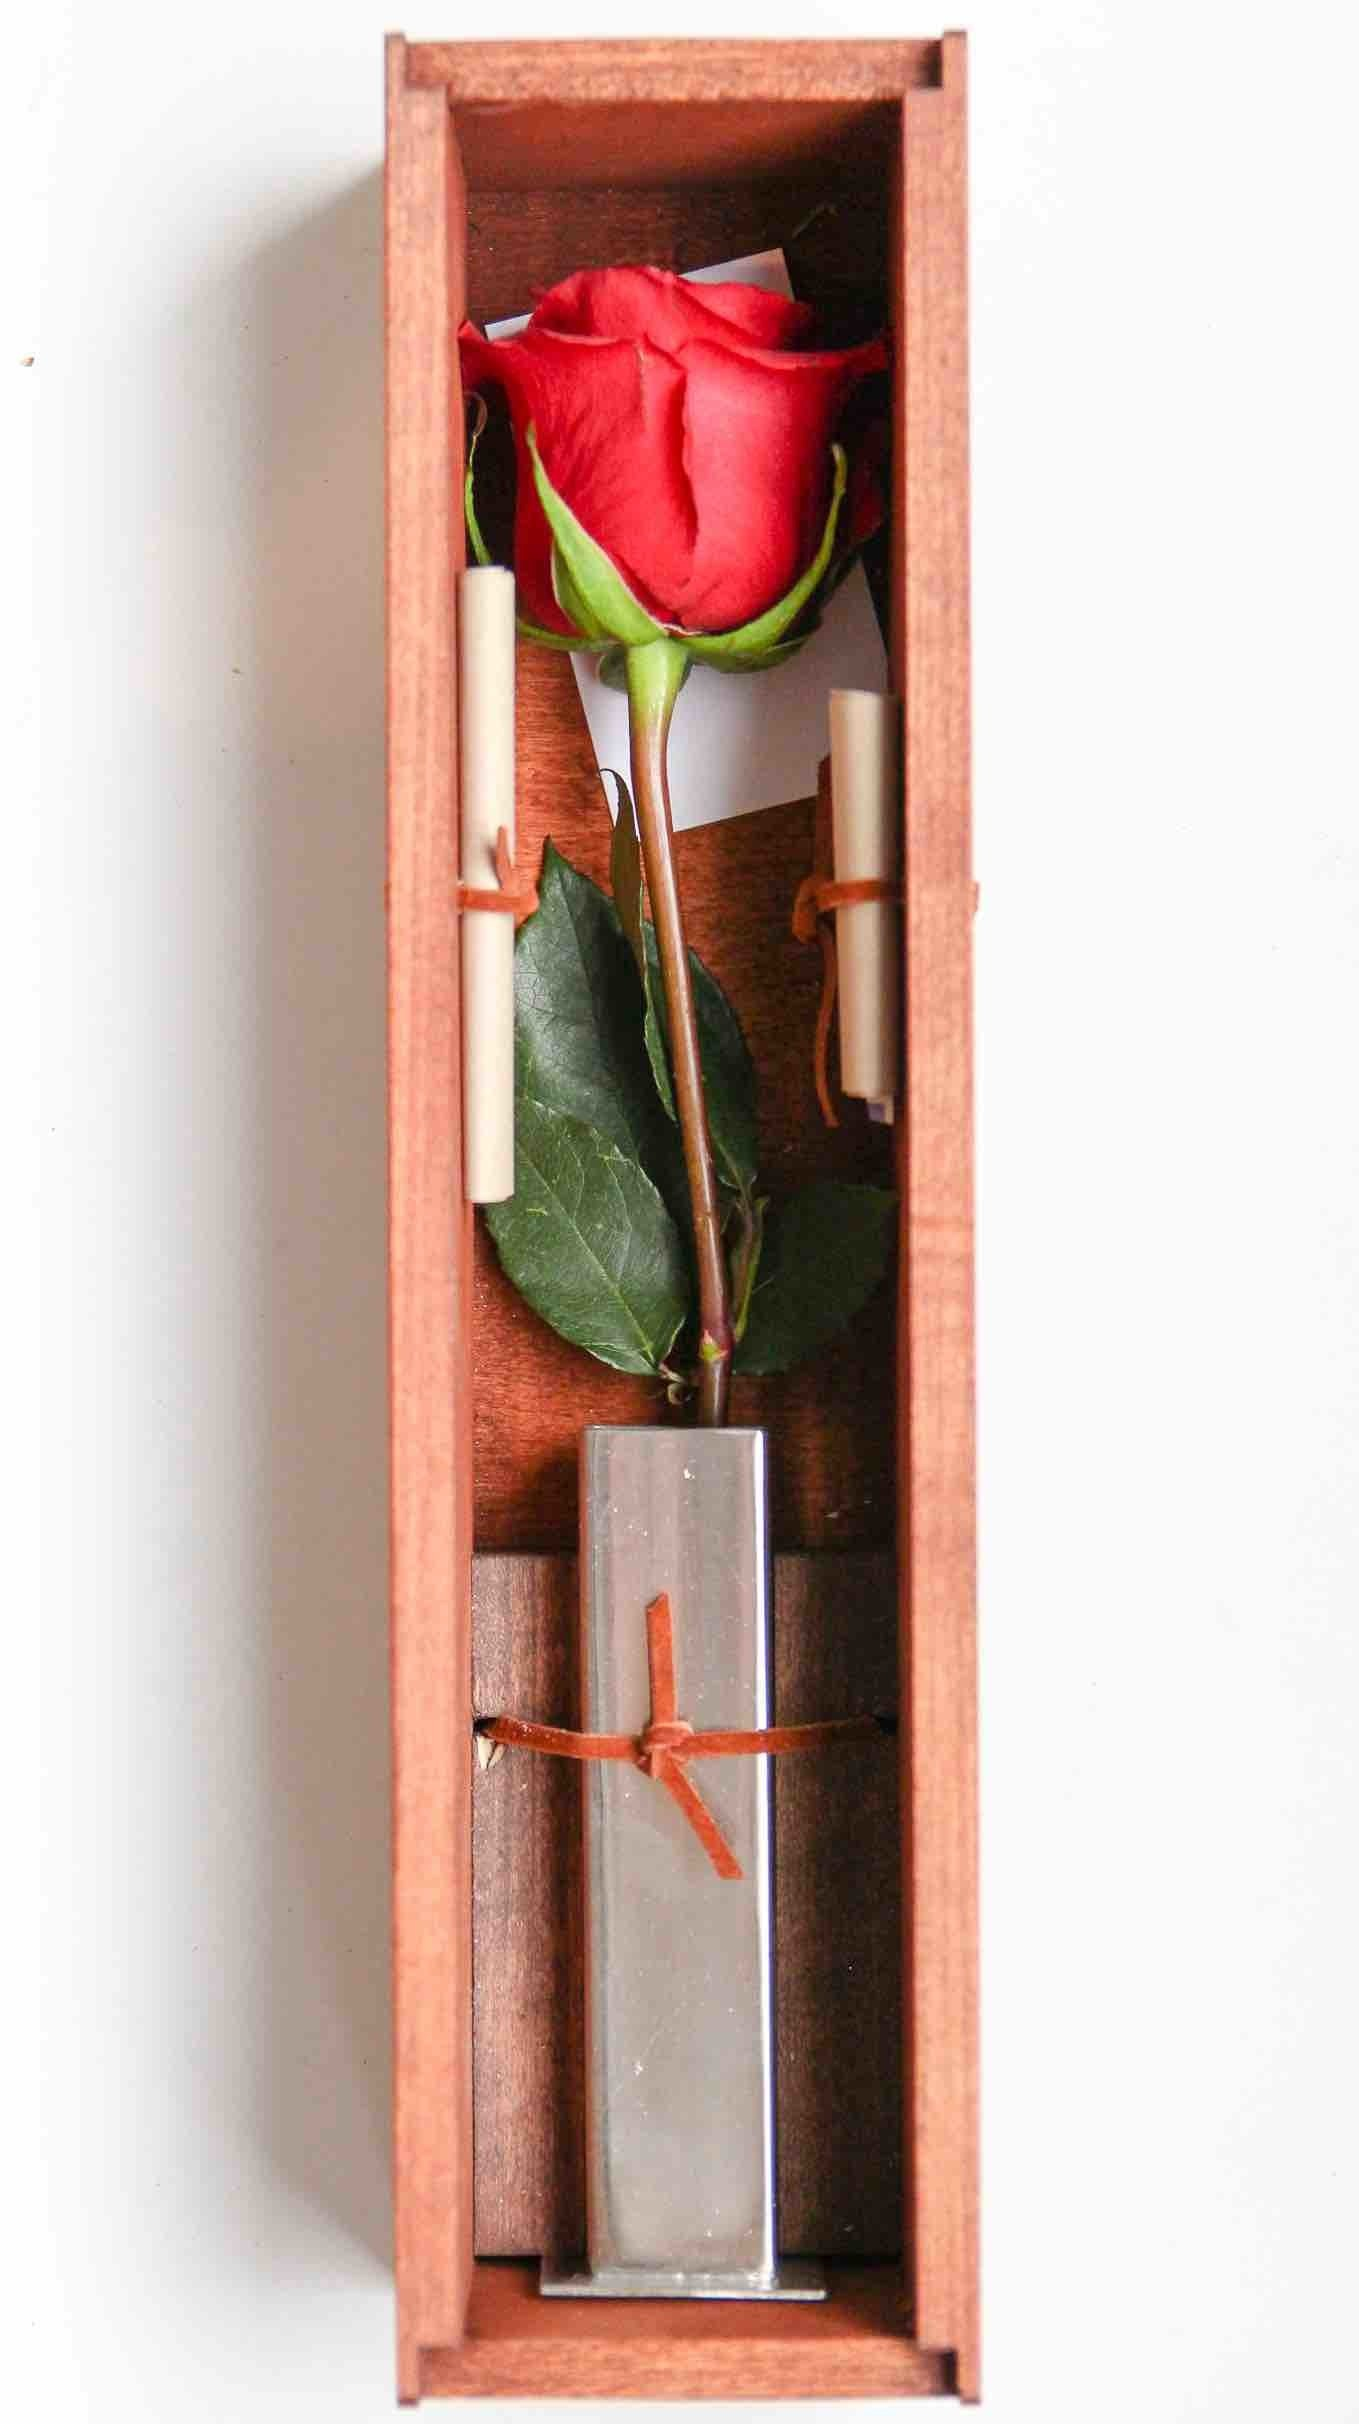 Buy or Send a Single Rose for Valentineu0027s Day One Red Rose Online | Single Rose Delivery | US | Ship One Rose  sc 1 st  Ship One Rose & Buy or Send a Single Rose for Valentineu0027s Day One Red Rose Online ... Aboutintivar.Com